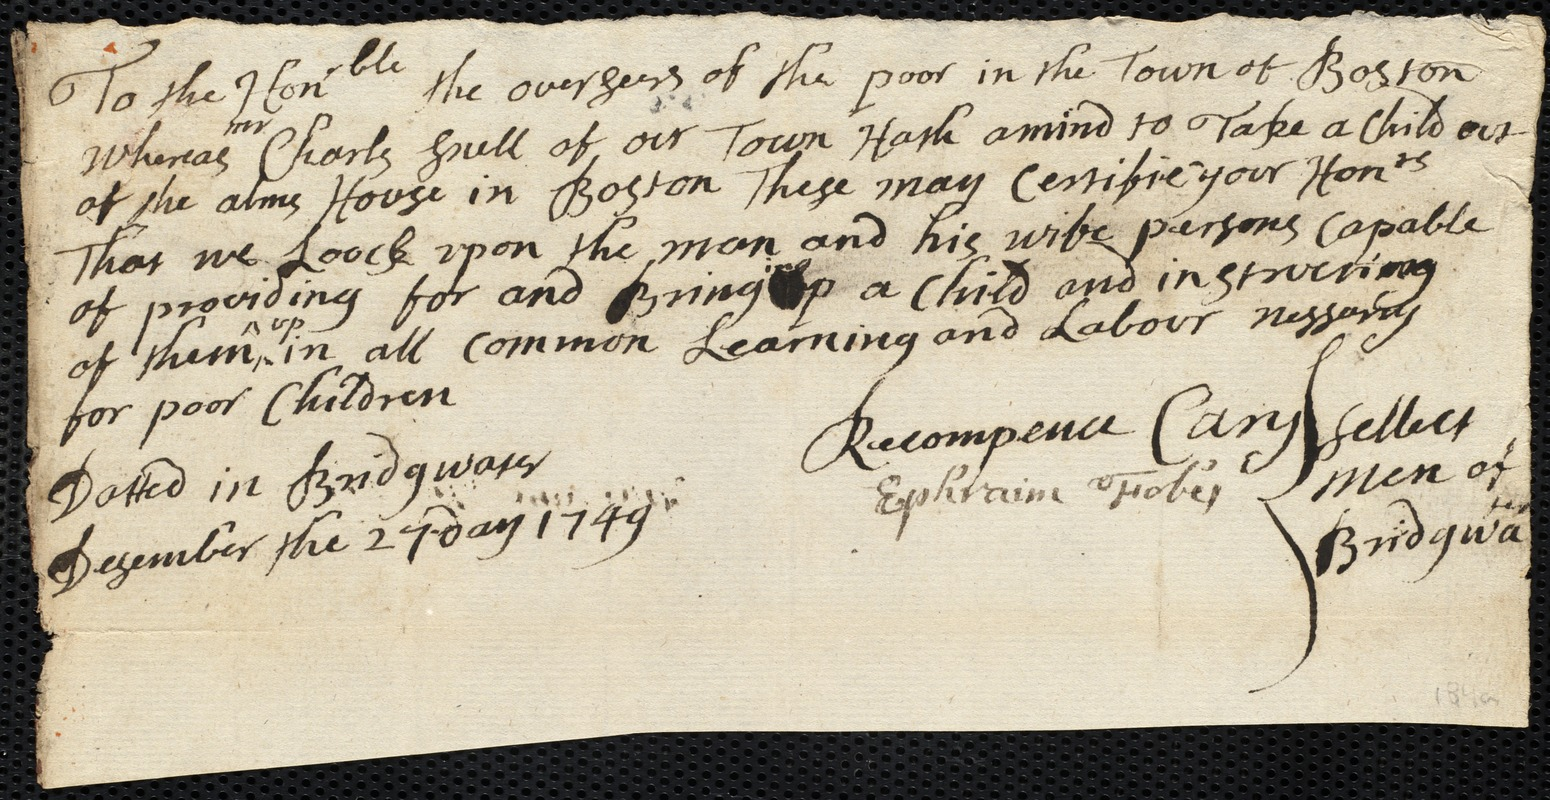 Document of indenture: Servant: Richardson, Charles. Master: Snell, Charles. Town of Master: Bridgewater. Selectmen of the town of Bridgewater autograph document signed to the Overseers of the Poor of the town of Boston: Endorsement Certificate for Charles Snell.